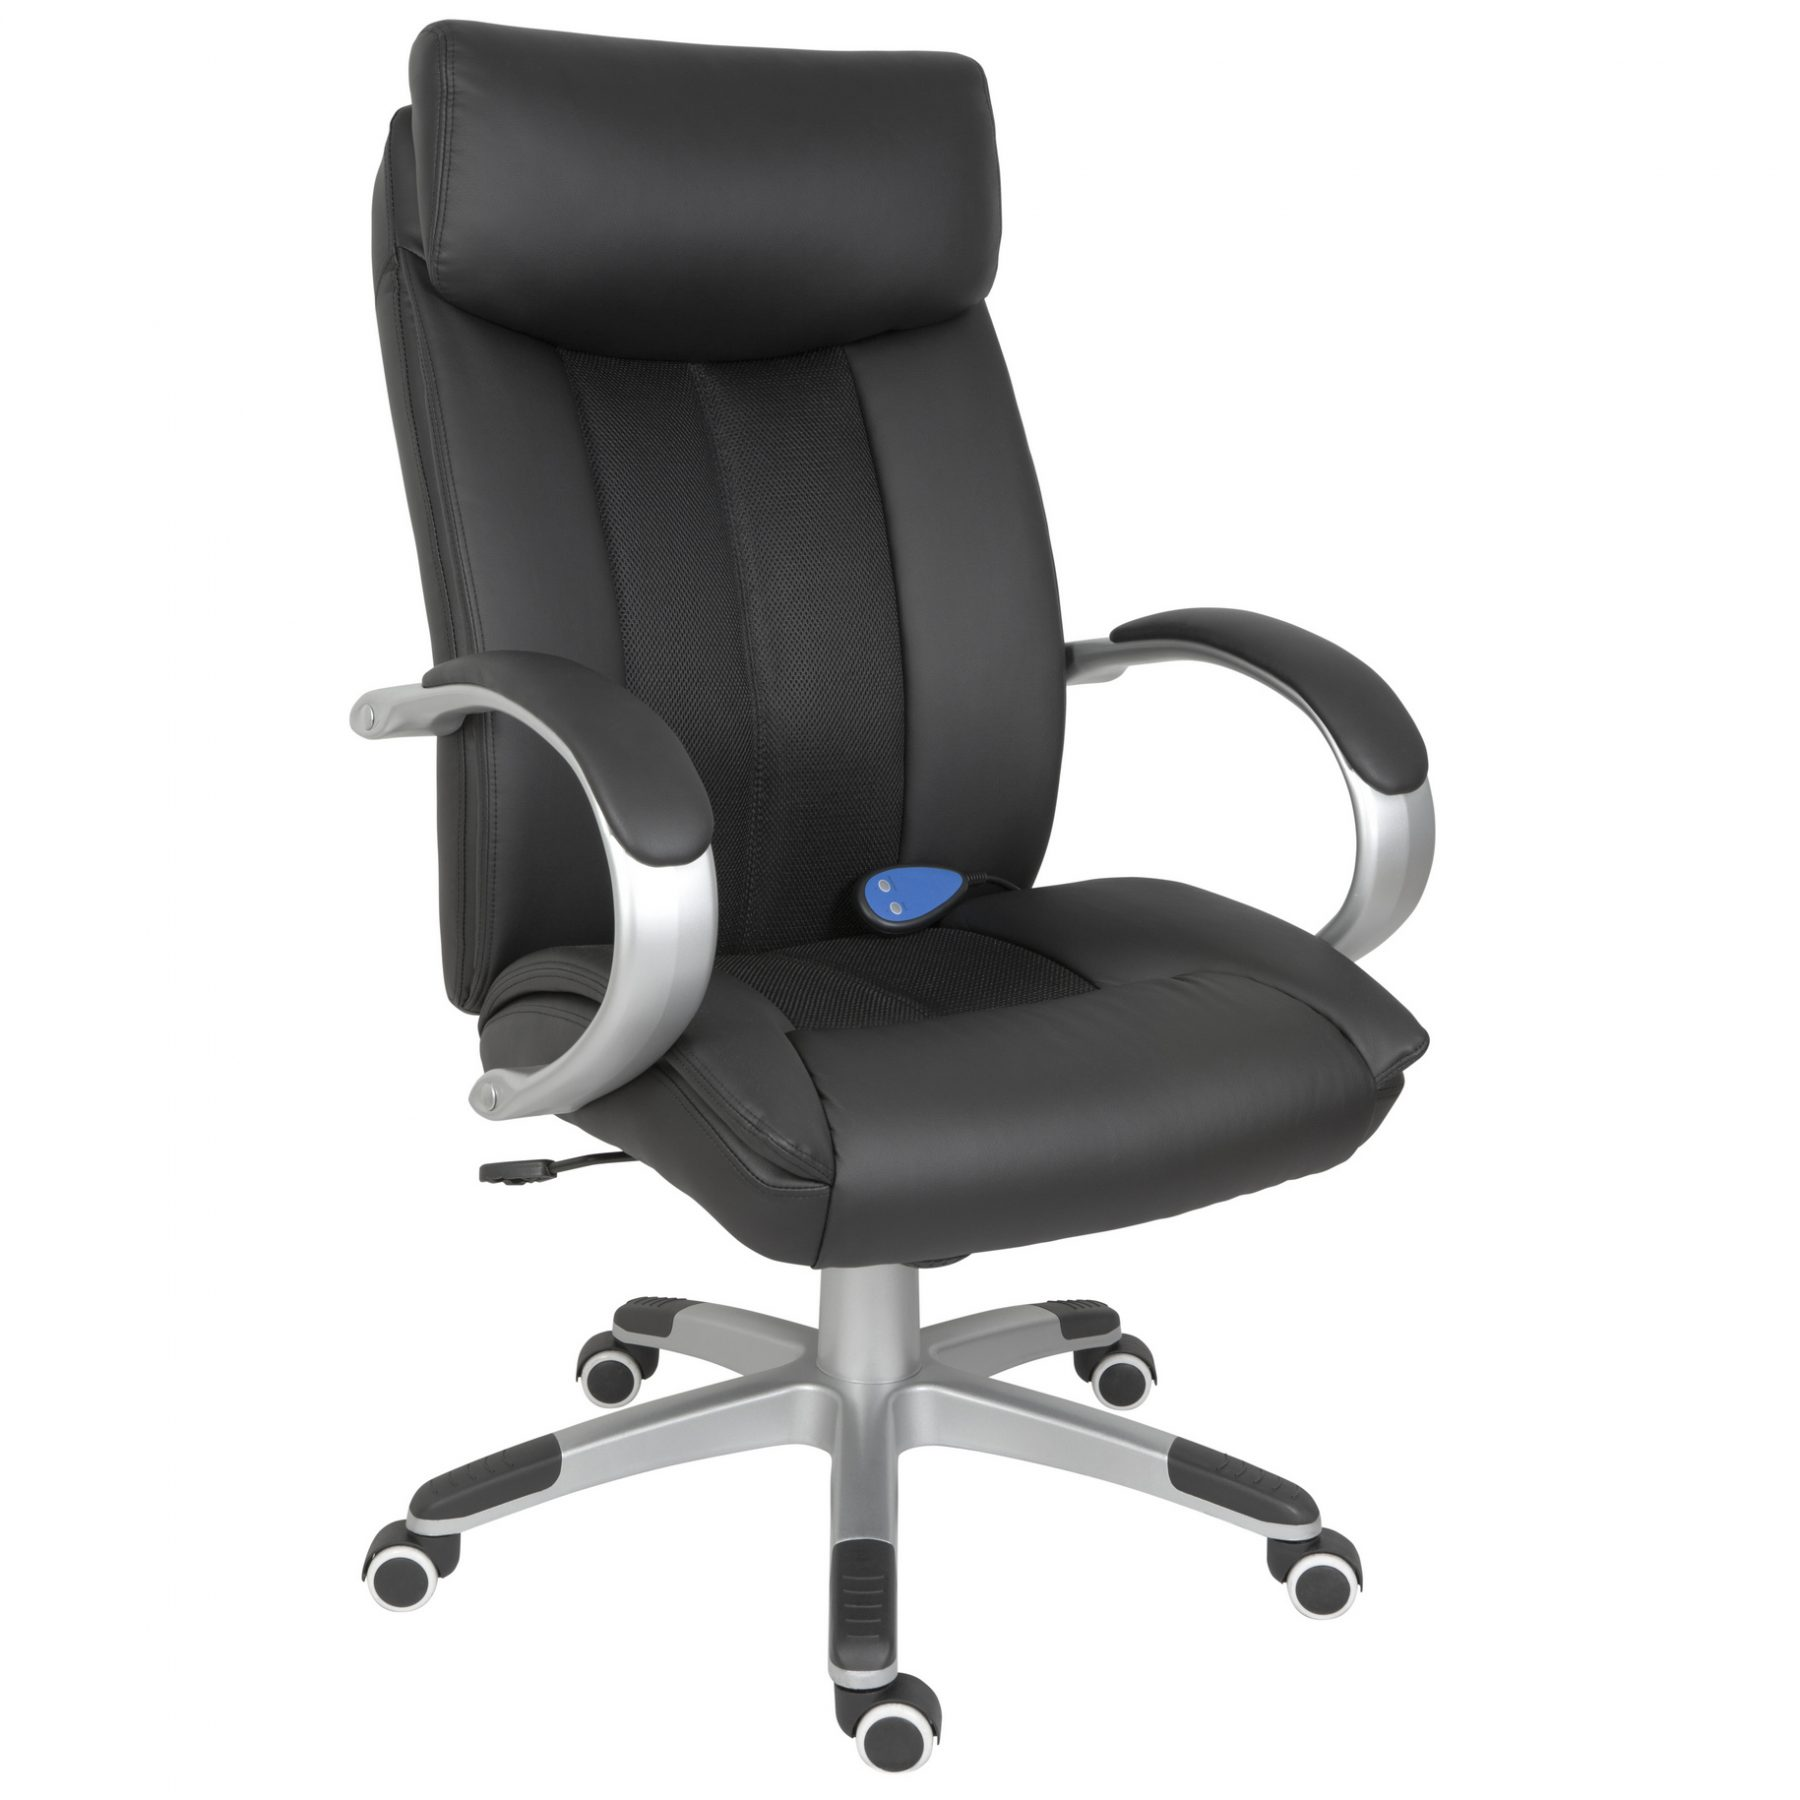 executive shiatsu massage office chair office chairs fads. Black Bedroom Furniture Sets. Home Design Ideas